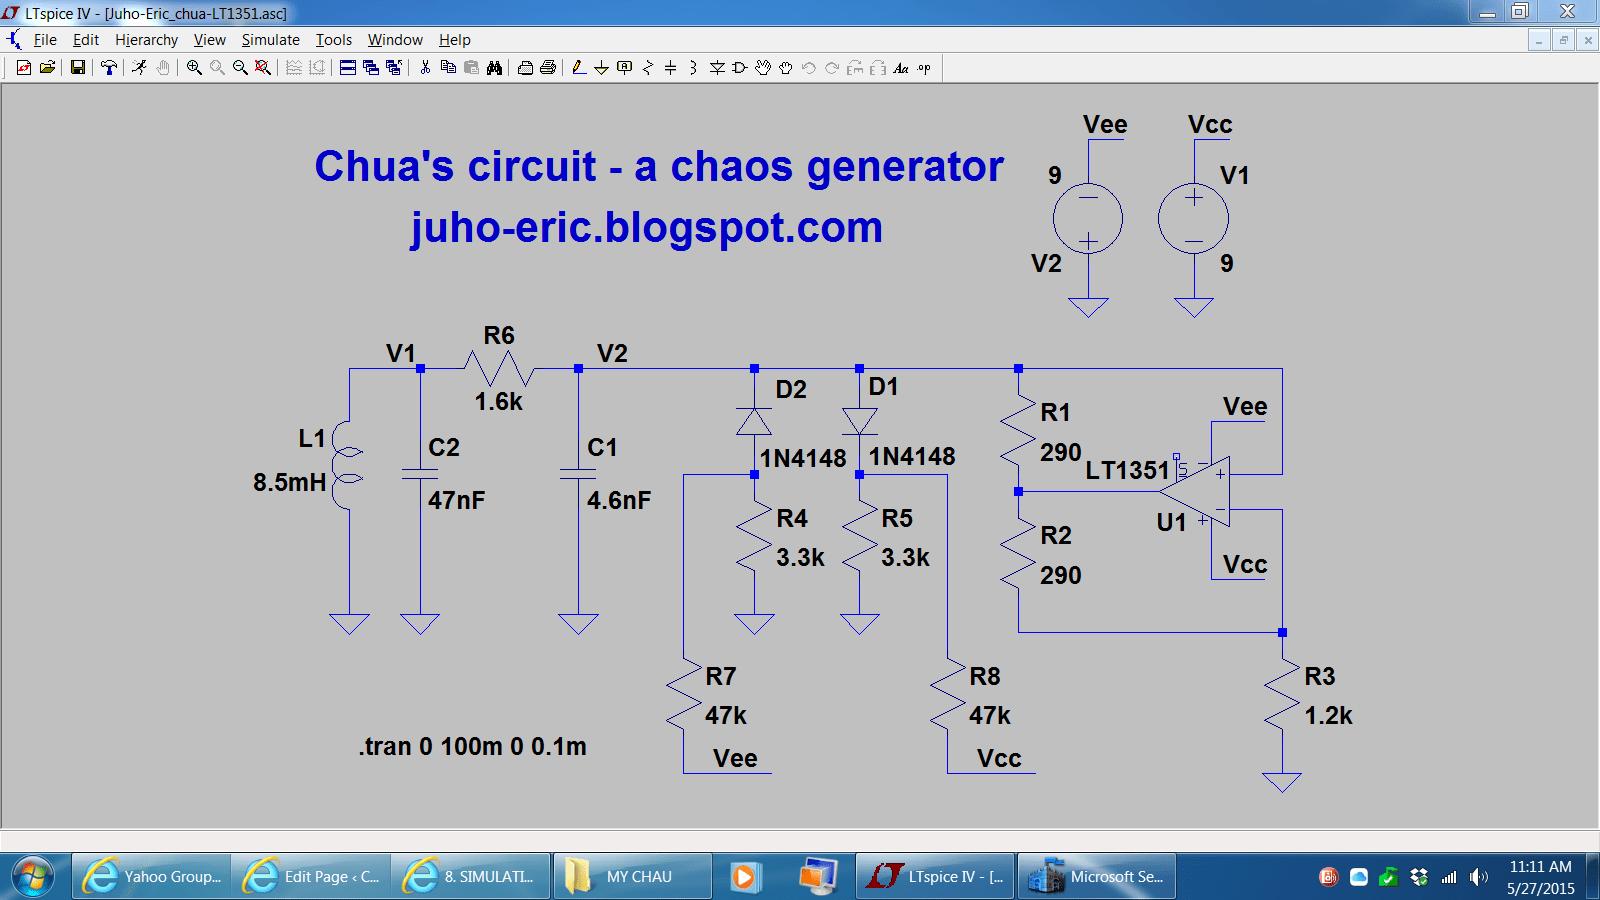 8  SIMULATING CHUA'S CIRCUIT WITH LTSPICE | CHAOTIC CIRCUITS